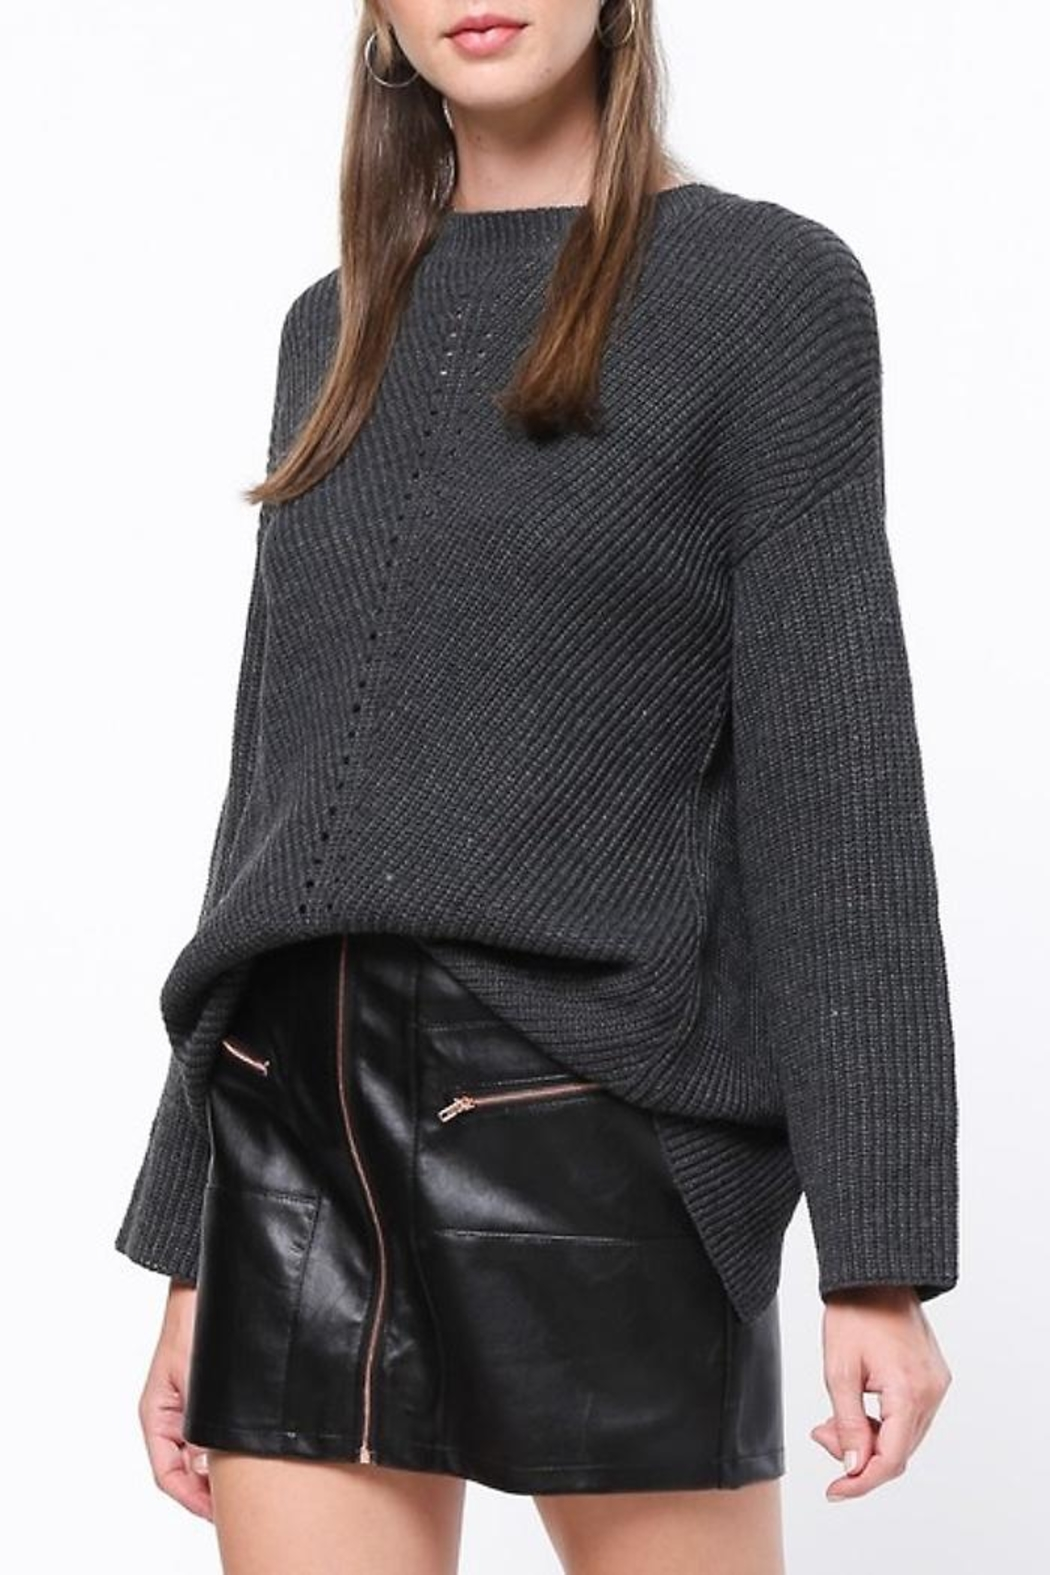 People Outfitter Lure-Me In Sweater - Side Cropped Image